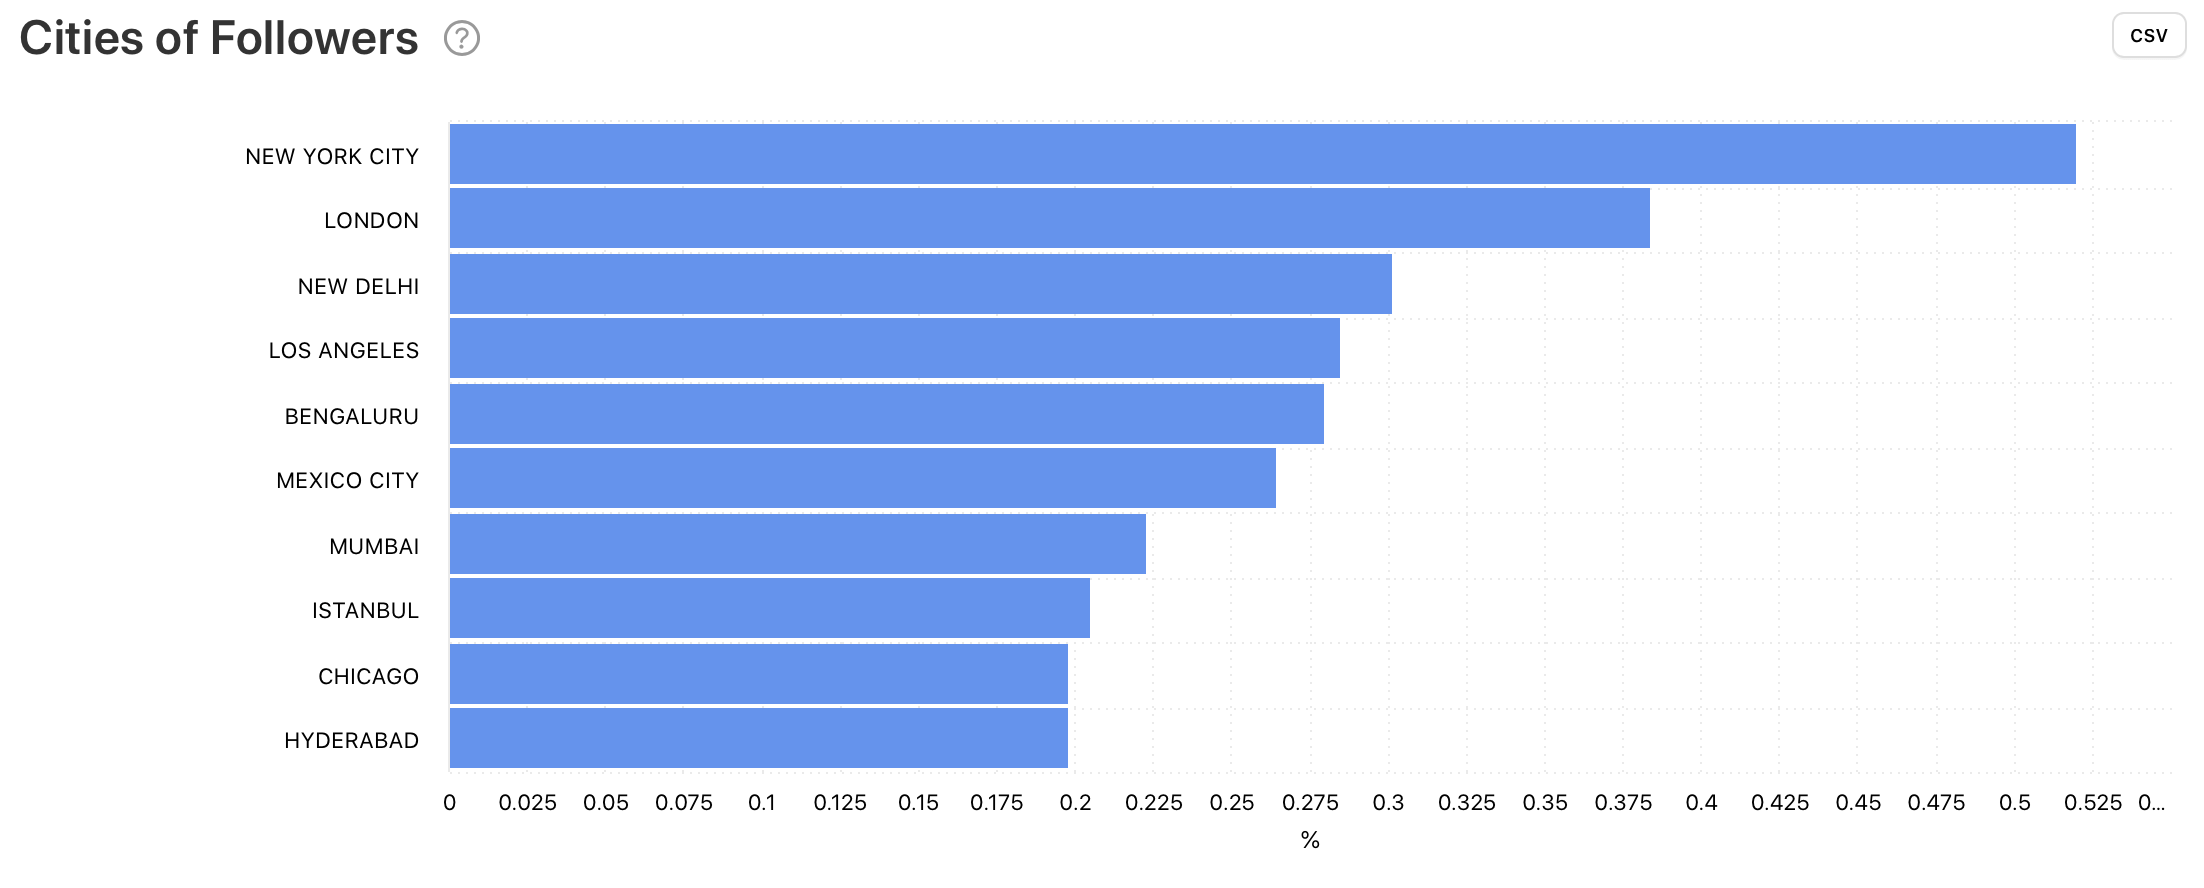 Cities of Followers Twitter analytics, graph by Minter.io